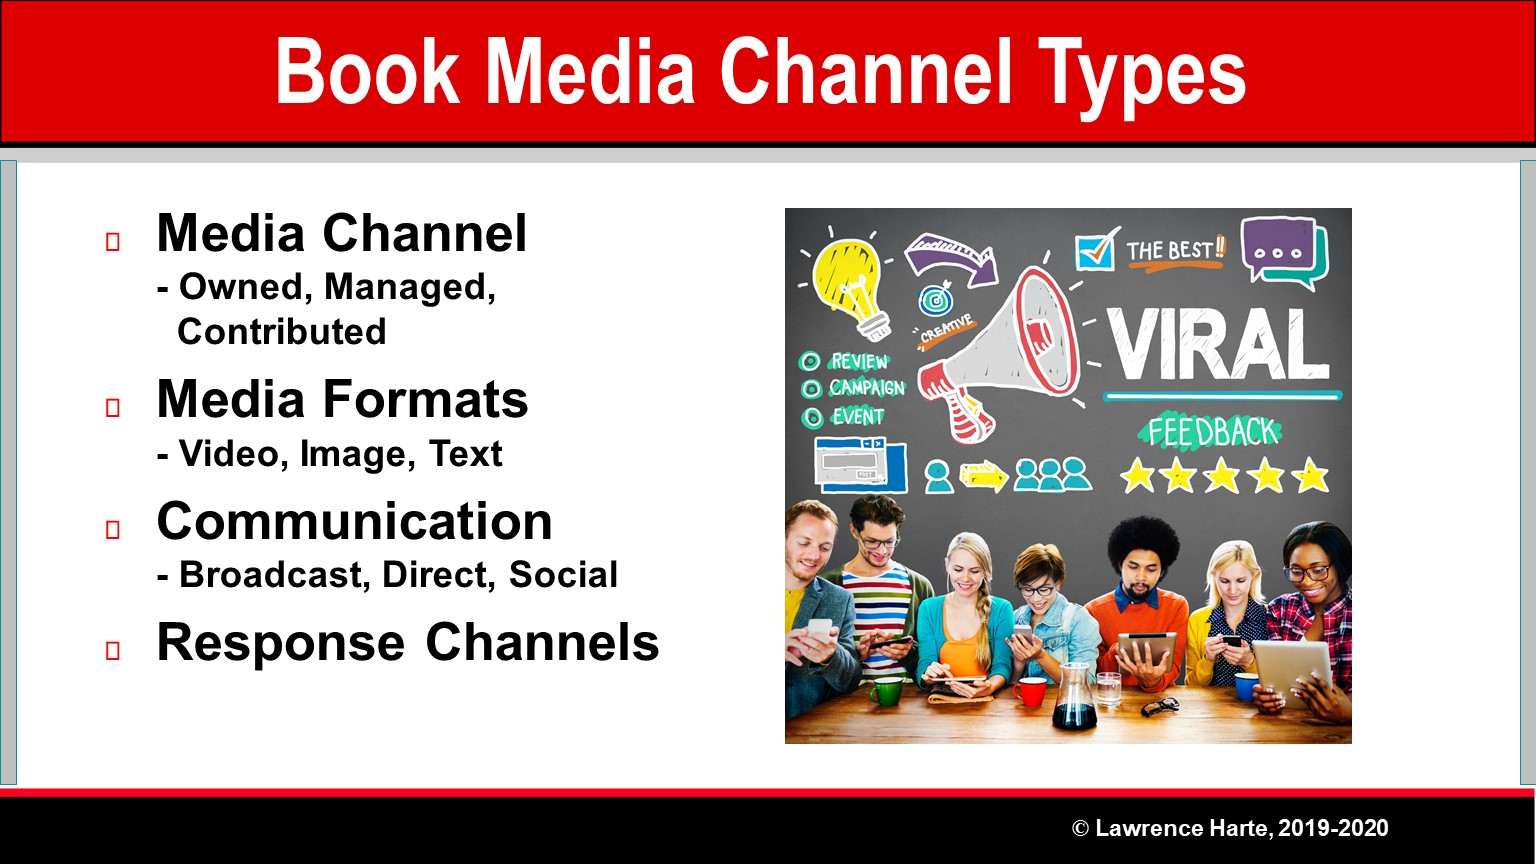 Book Pre-Launch Marketing Media Channel Types